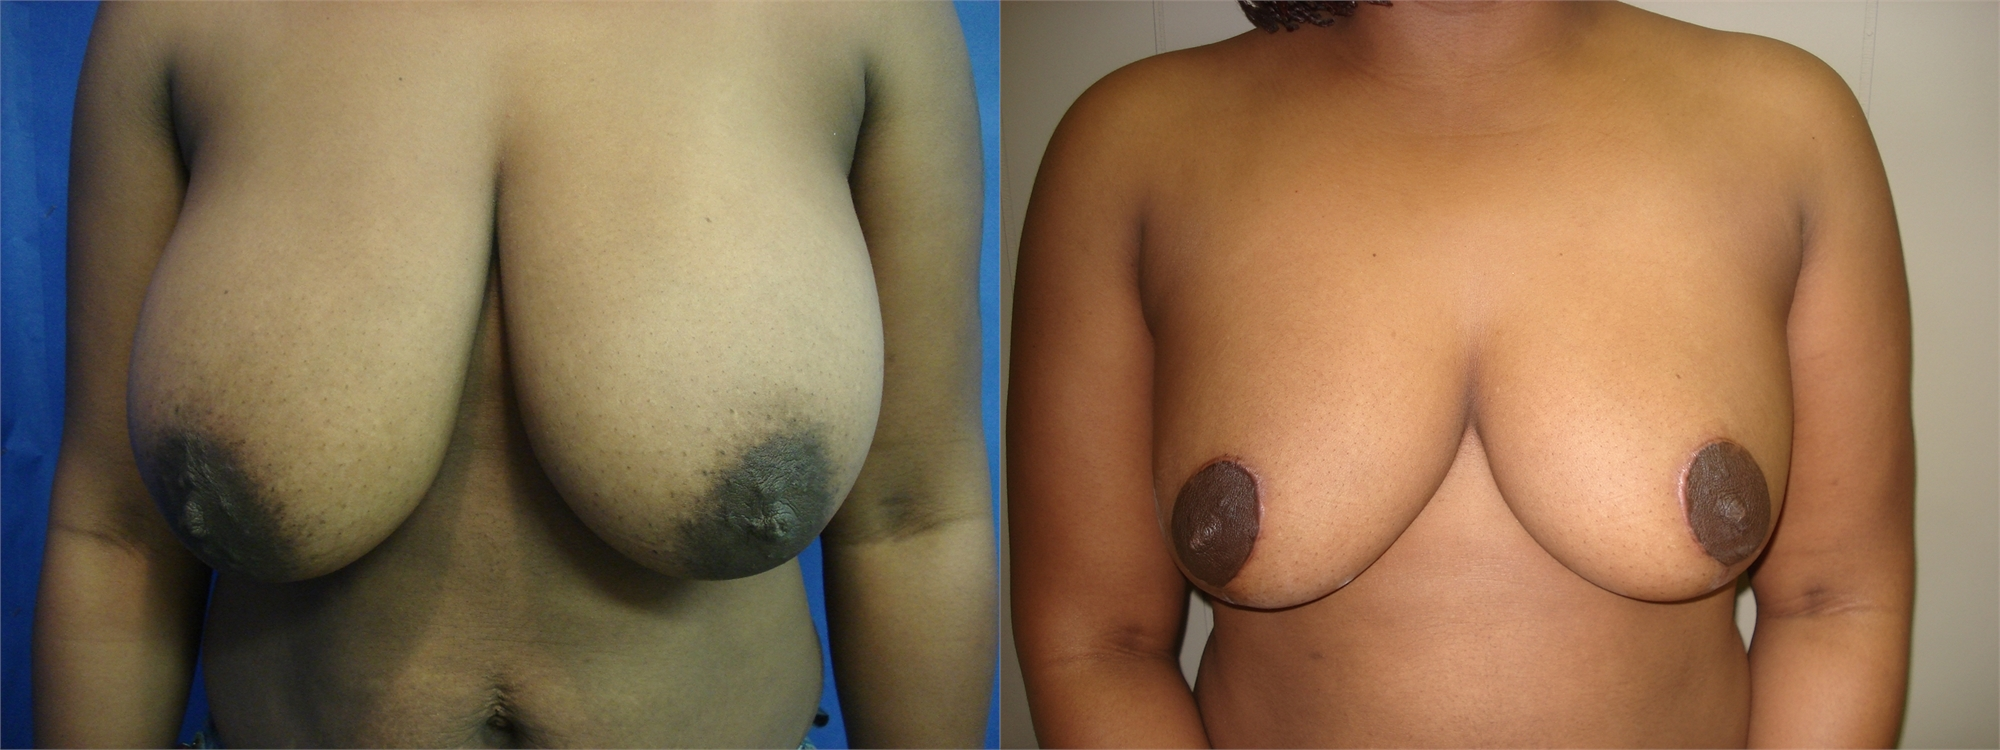 Breast Lift Before and After Seattle and Tacoma, WA